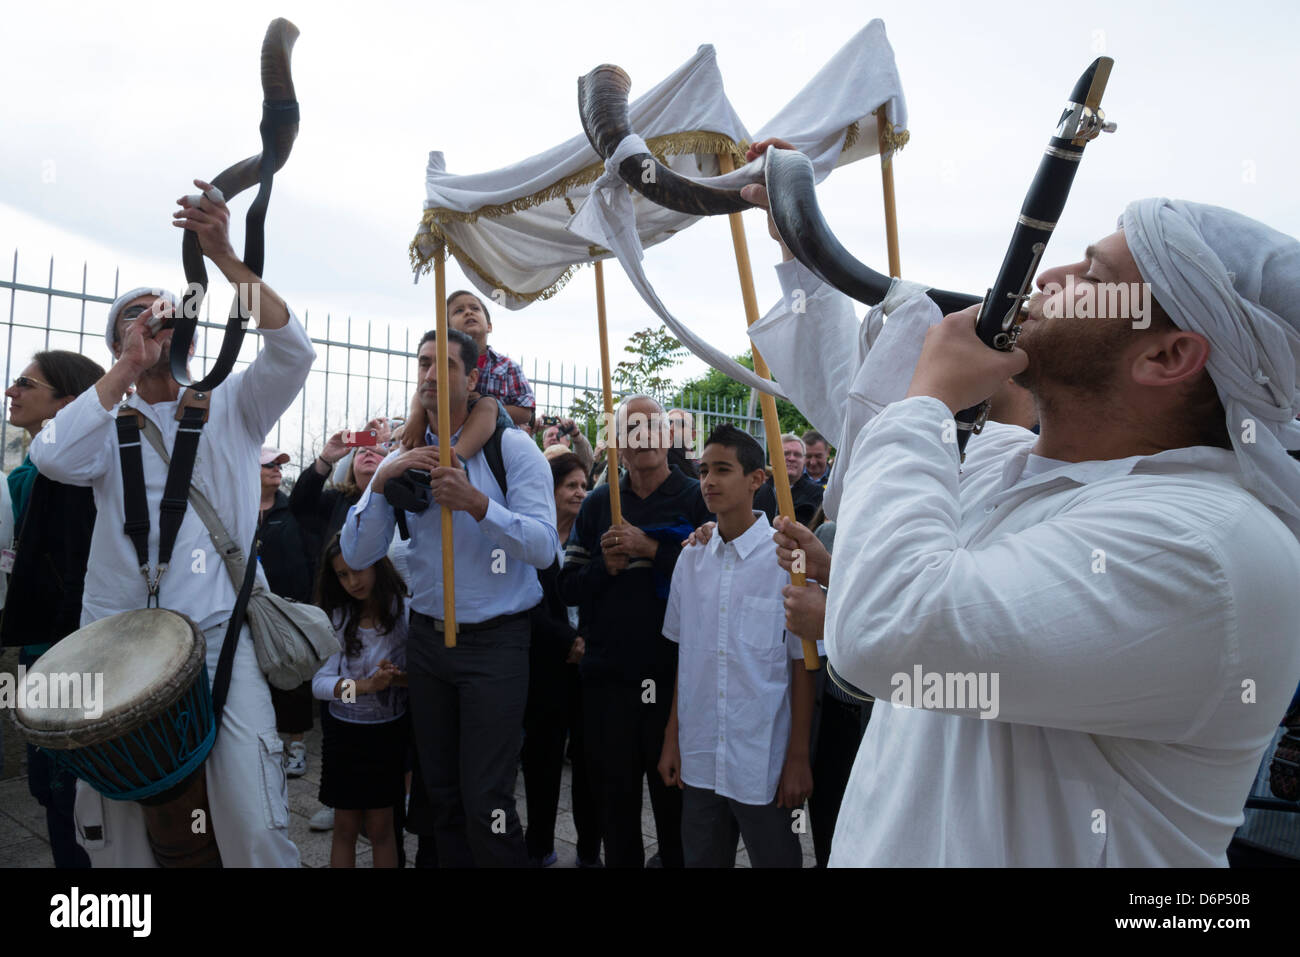 Bar Mitsva celebration. Western Wall. Jerusalem Old City. Israel. - Stock Image